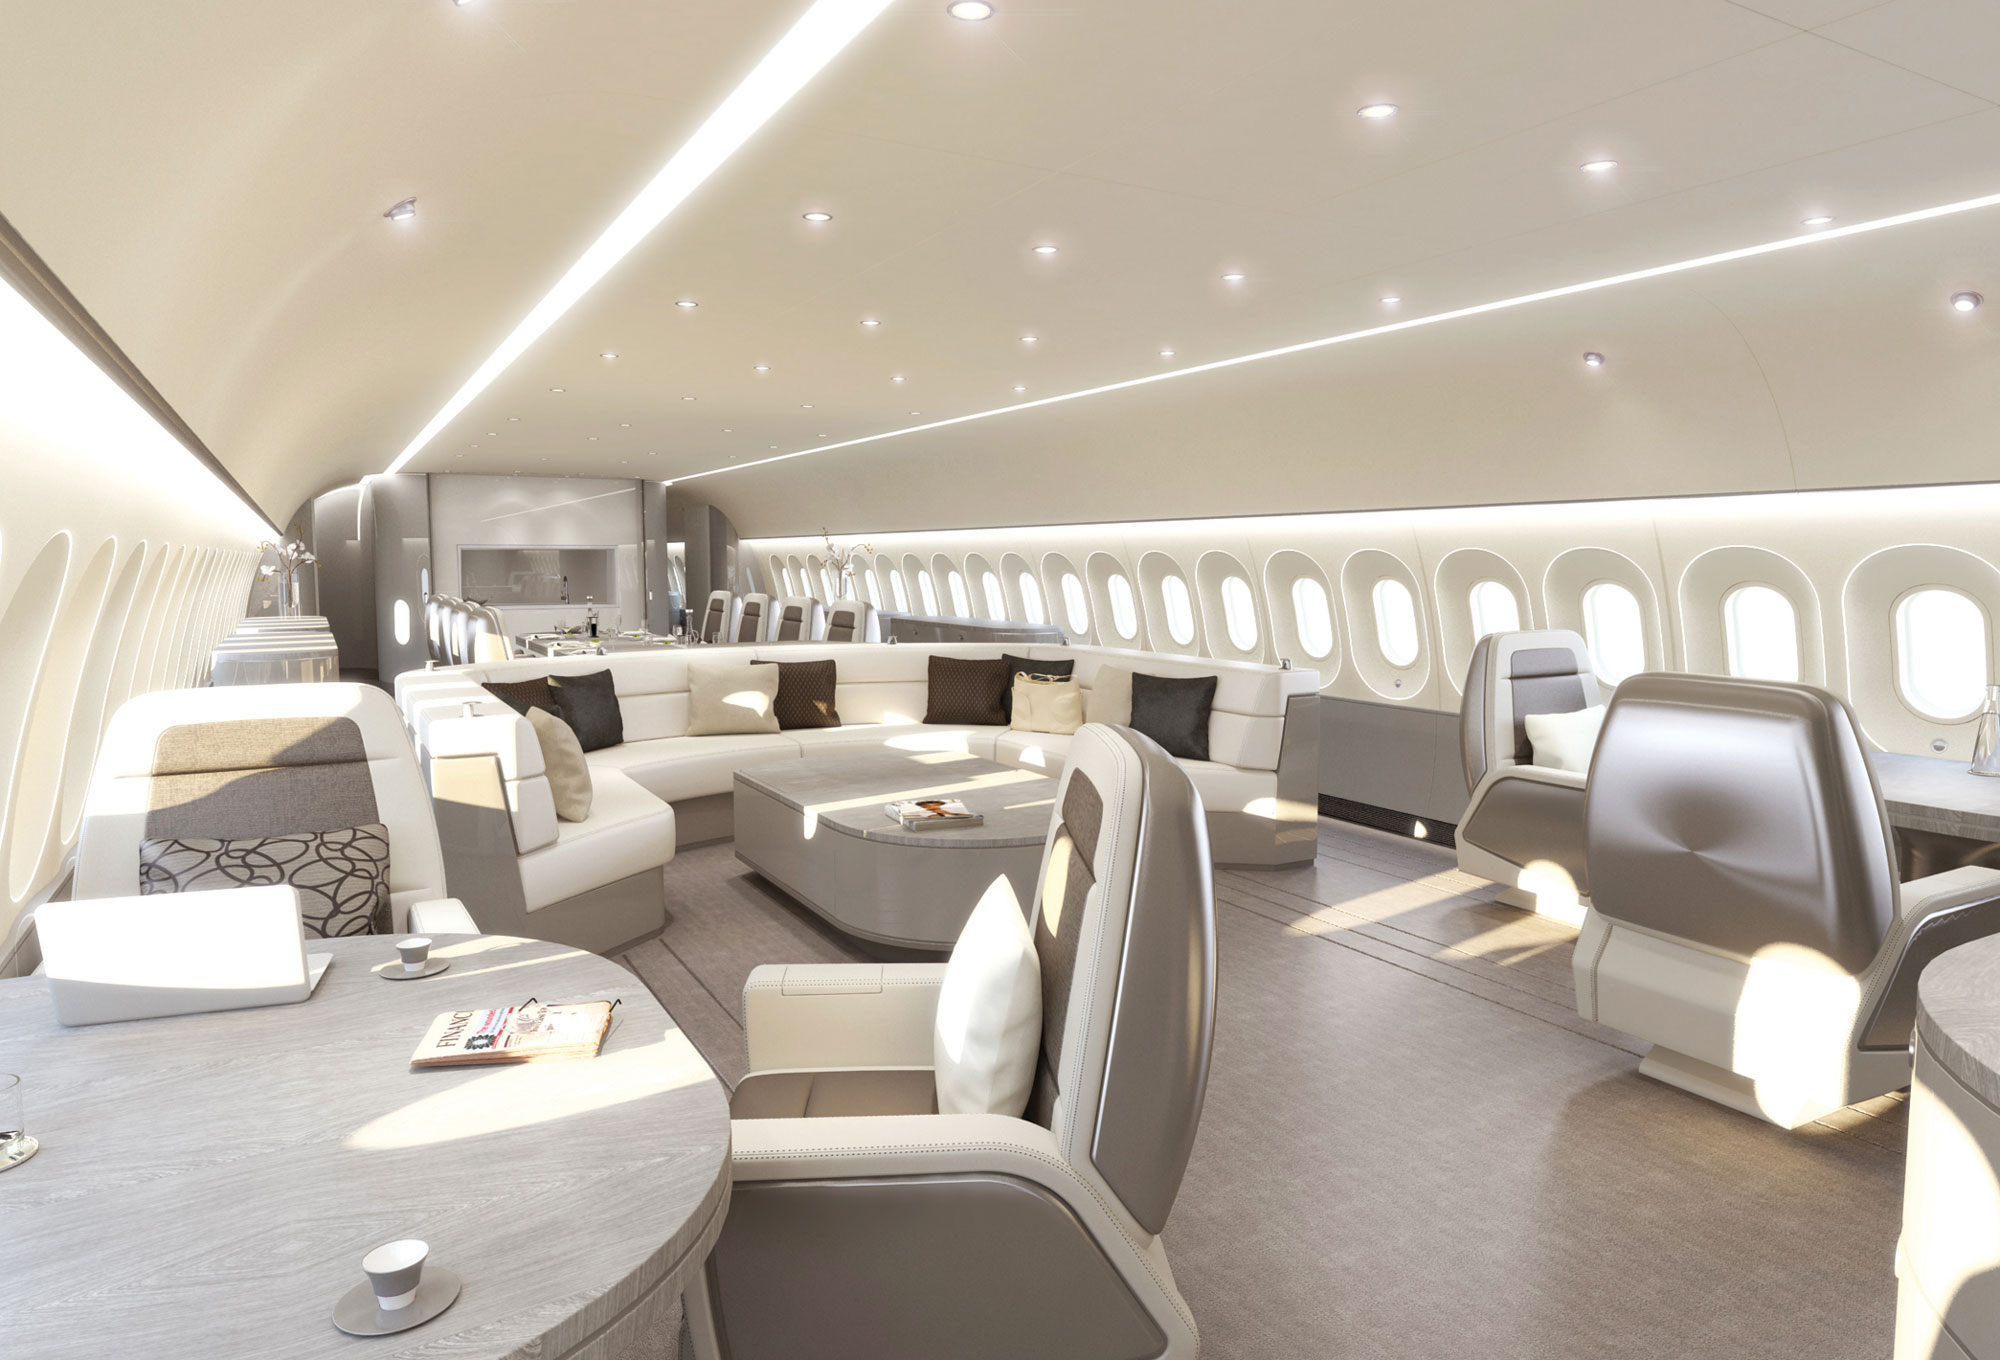 Luxury vip cabins increasing in popularity business for Aircraft interior designs